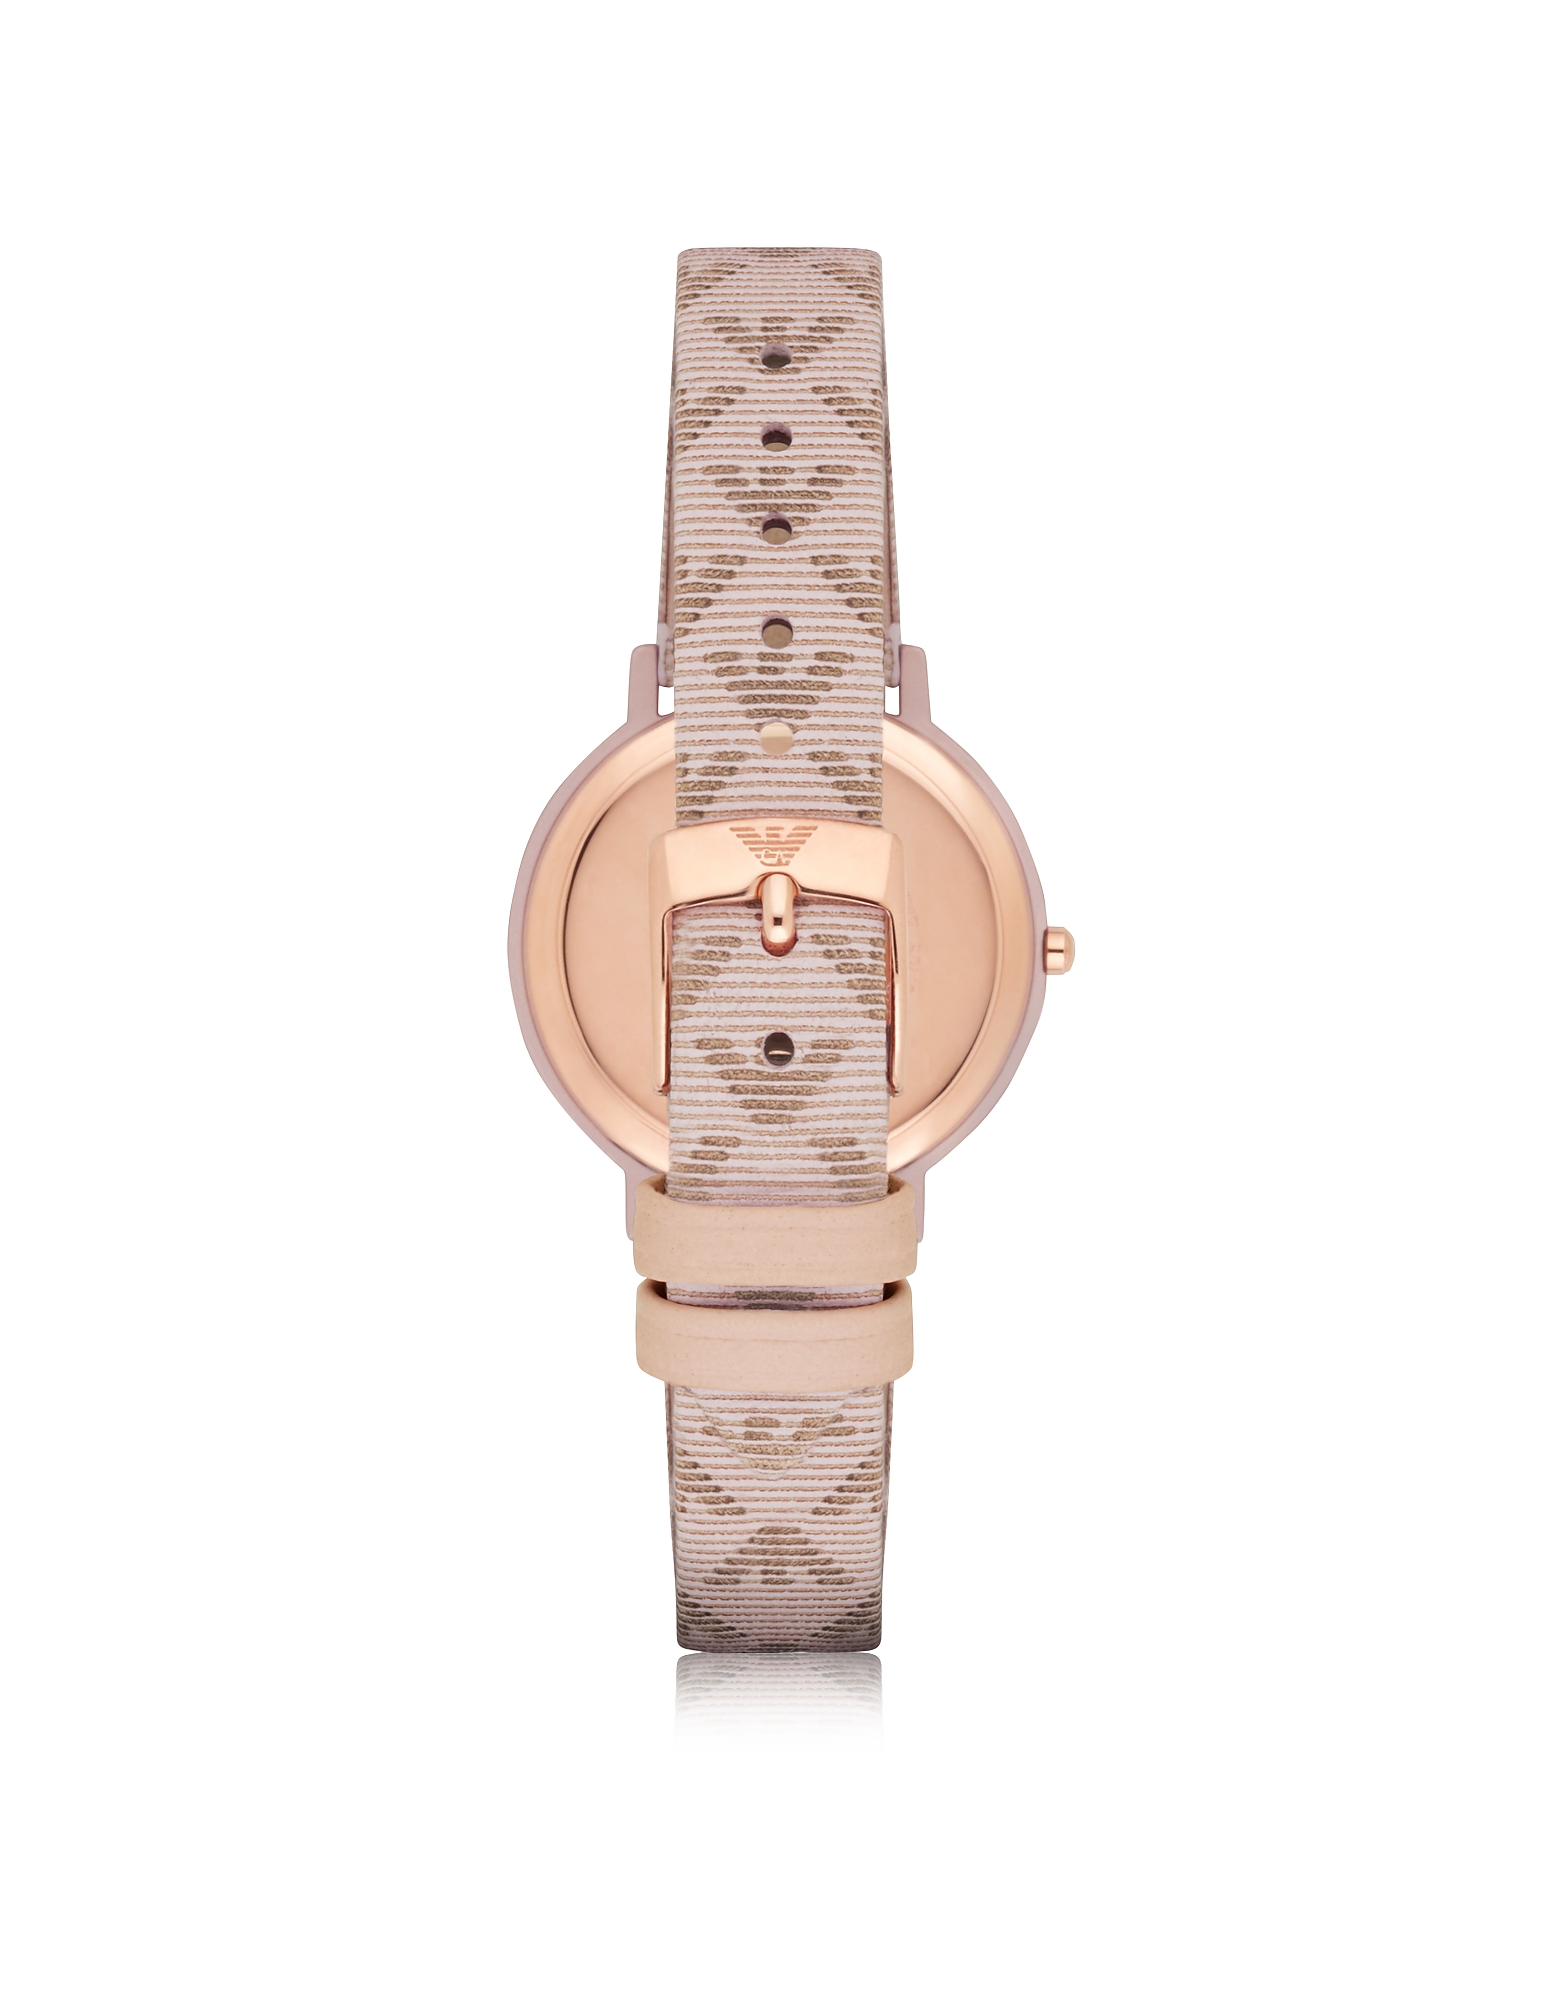 Kappa Stainless Steel Women's Quartz Watch w/Signature Leather Strap от Forzieri.com INT